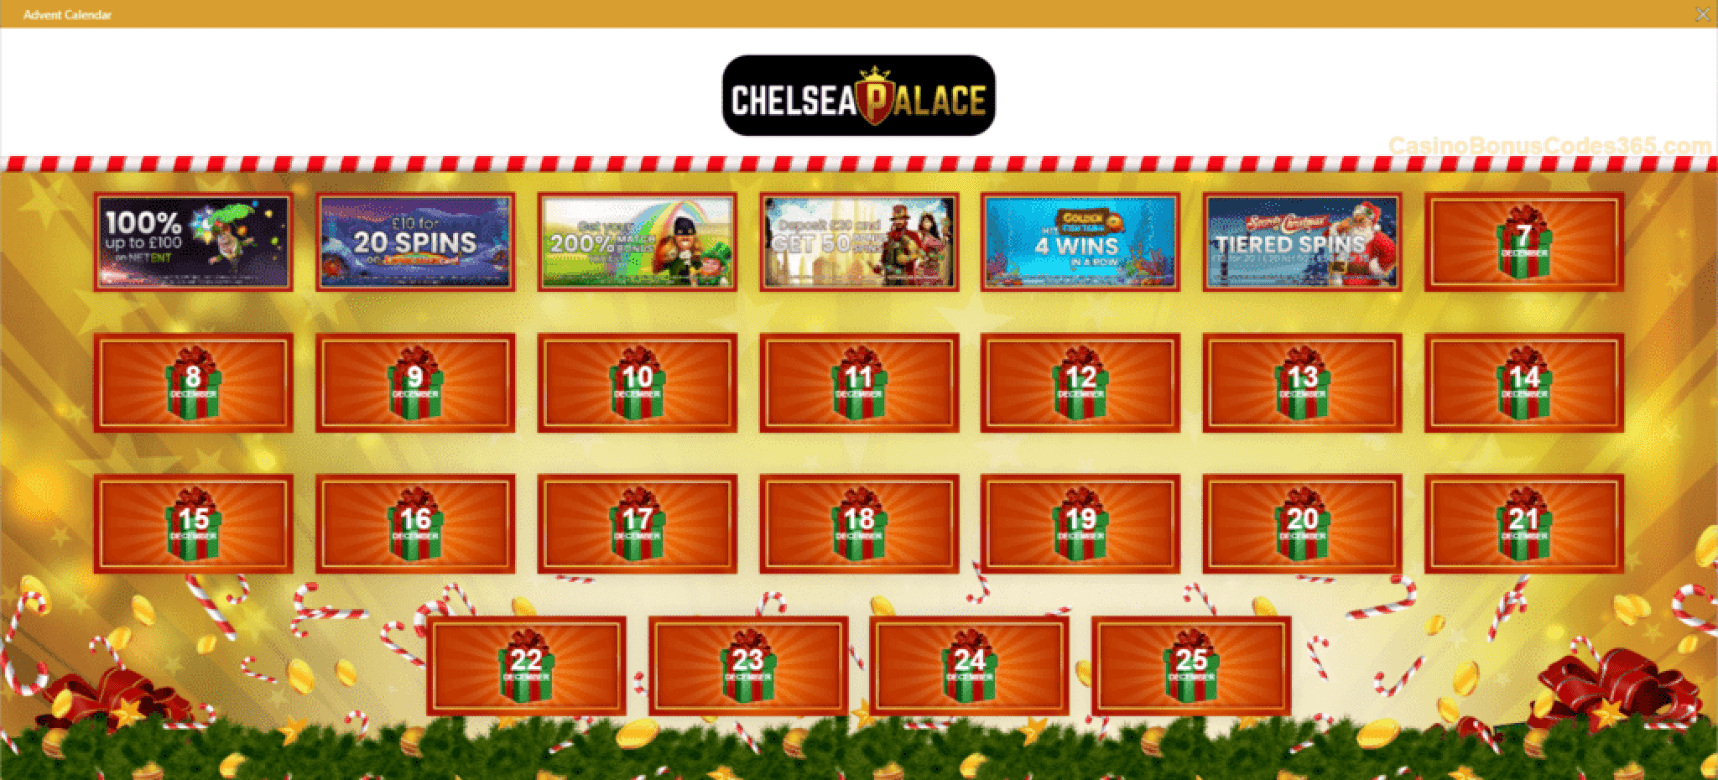 Chelsea Palace Casino Advent Calendar